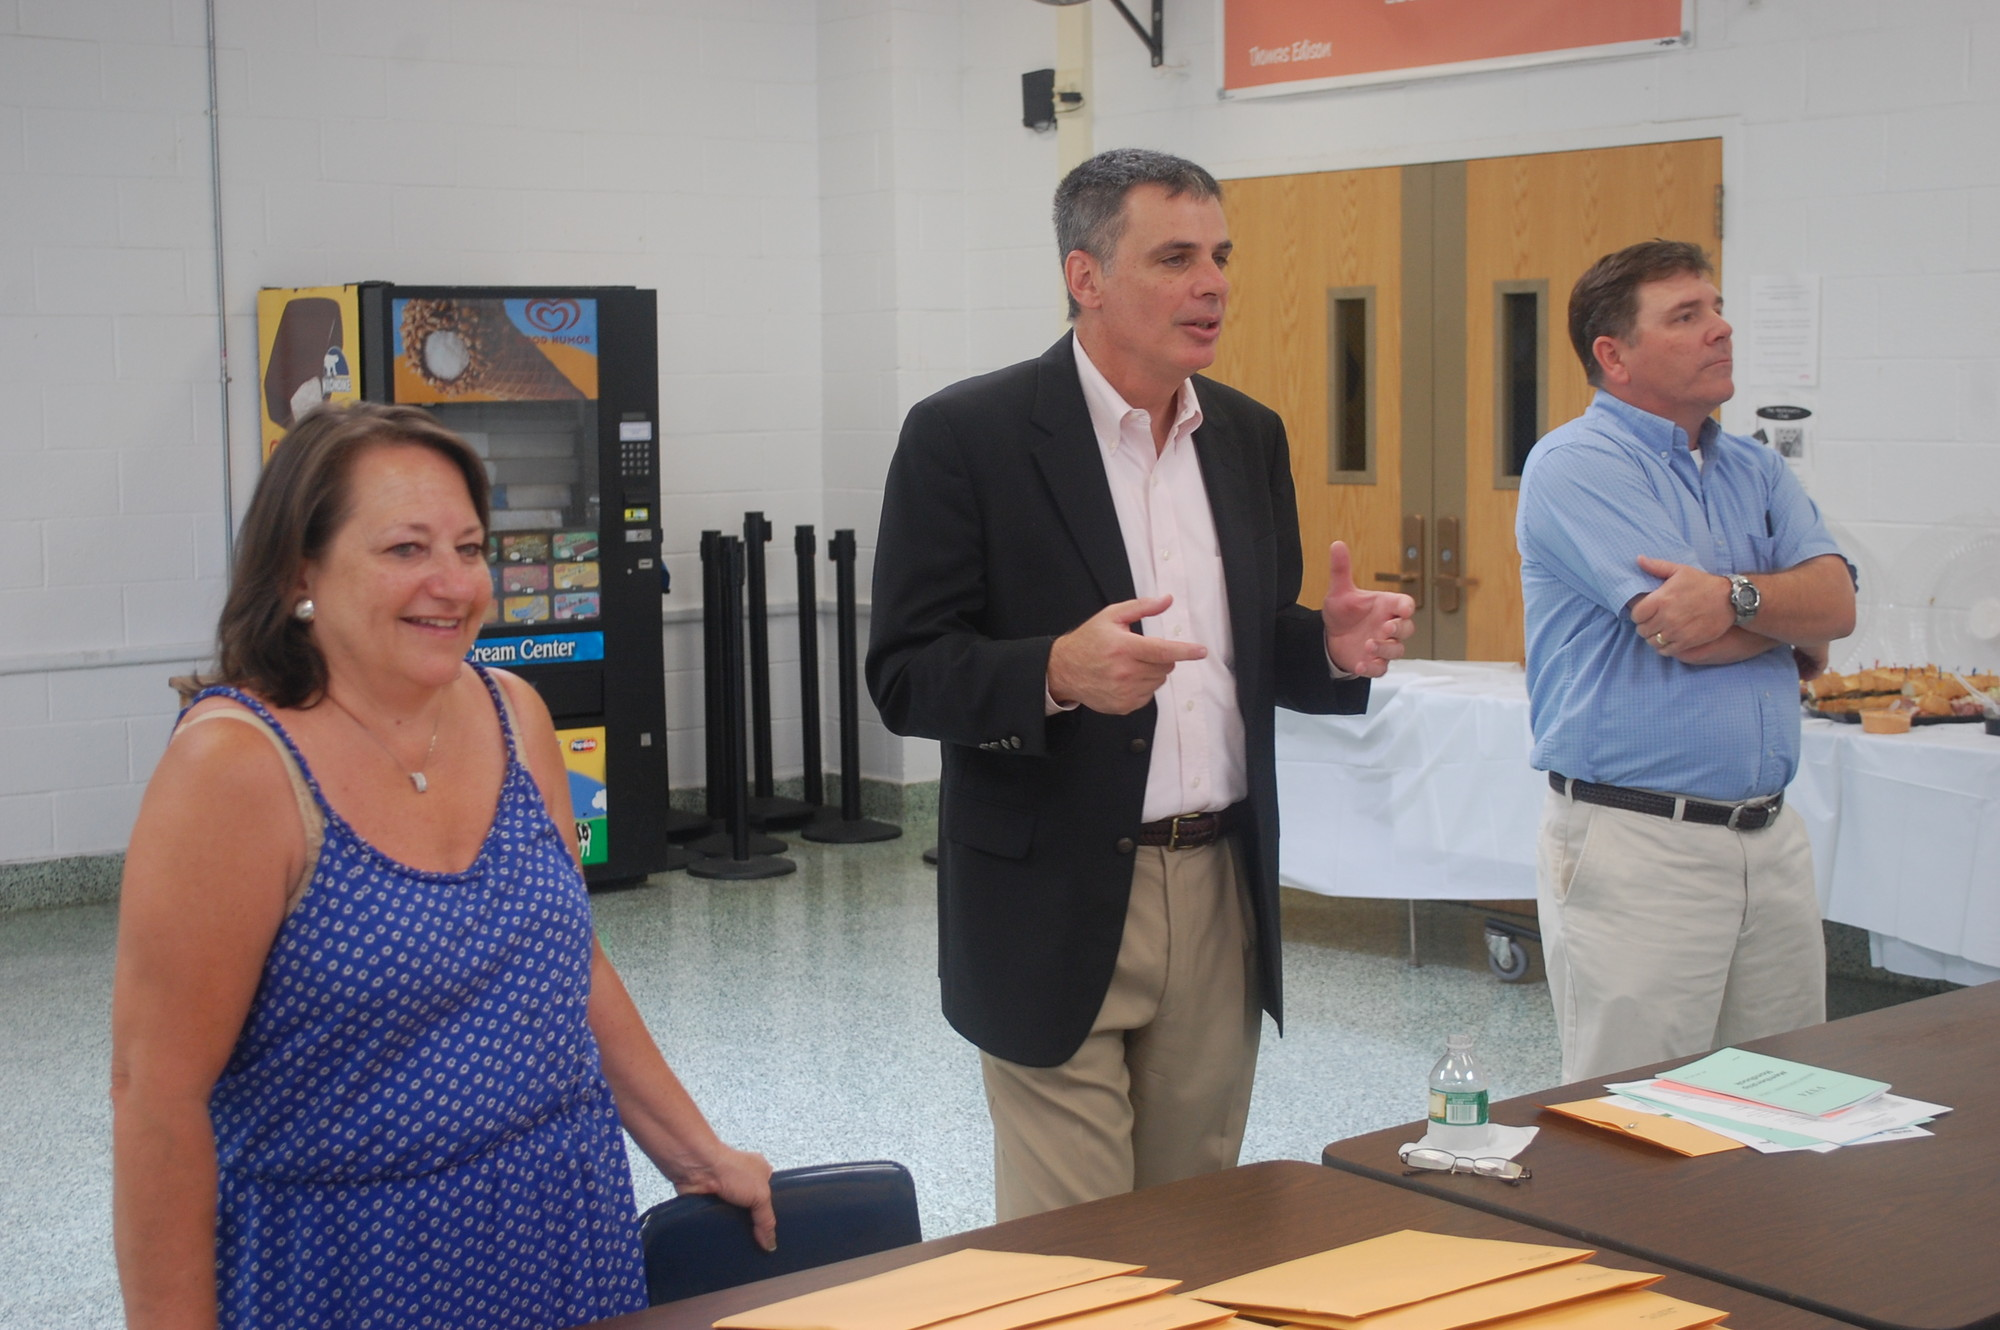 Valley Stream Teachers Association President Patrick Naglieri, center, was joined by union vice presidents June Innella and Richie Adams at new-teacher orientation in August.